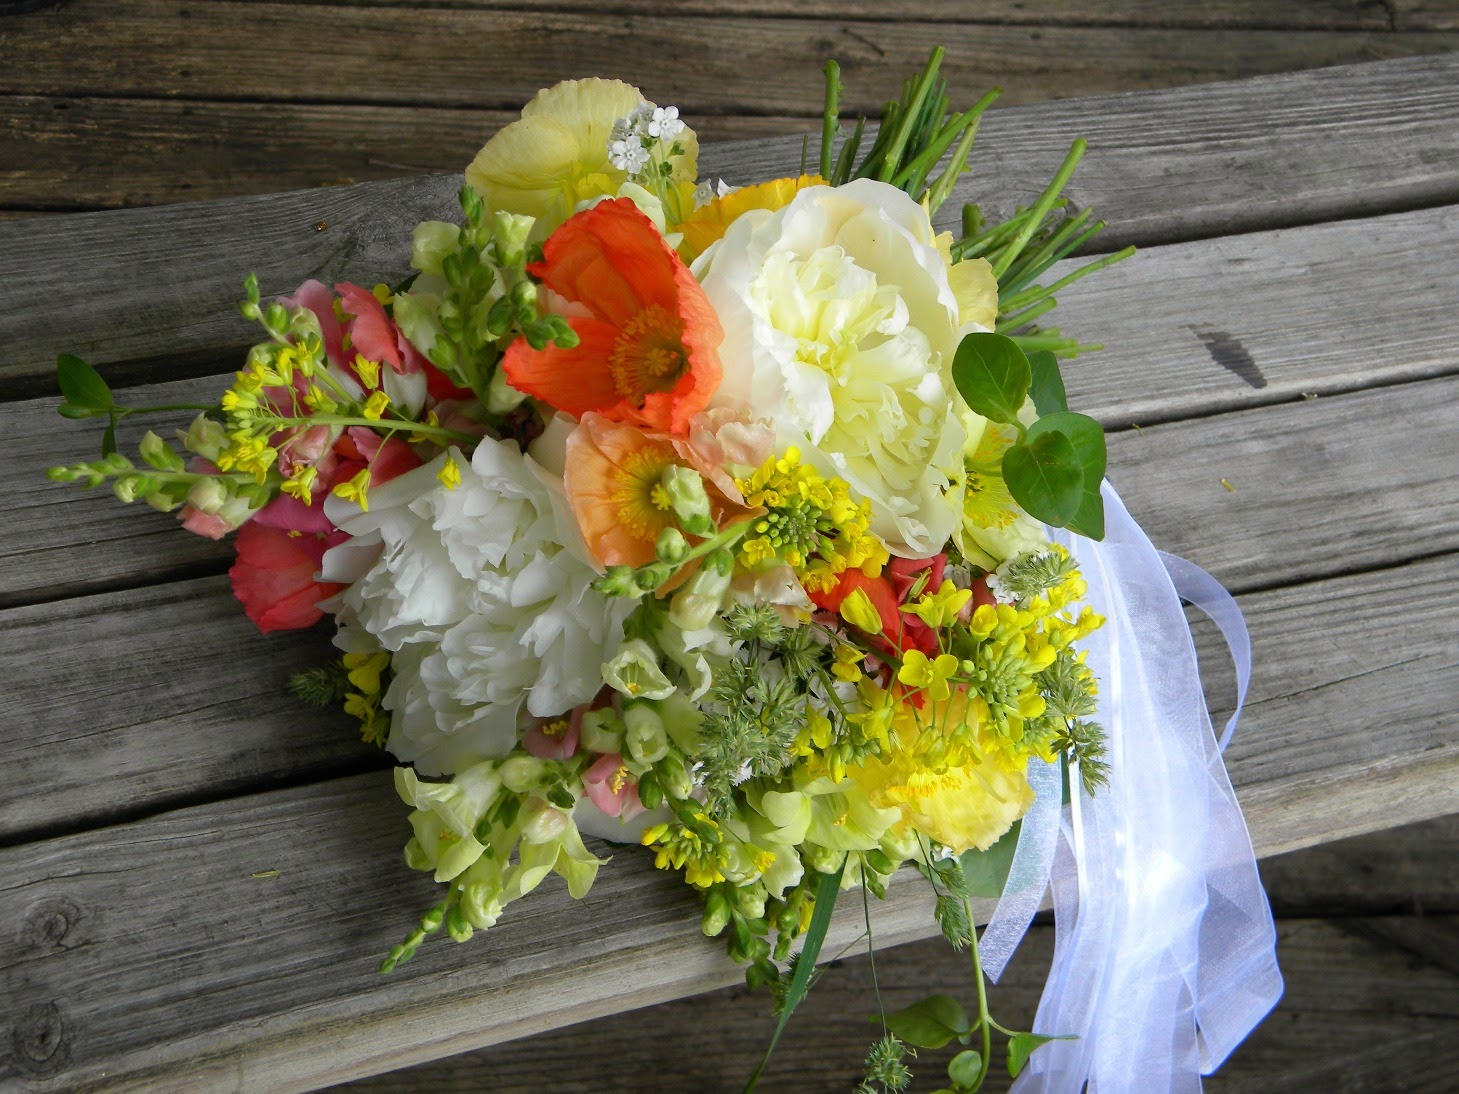 Wedding Flowers From Springwell: Peach And Coral Poppies